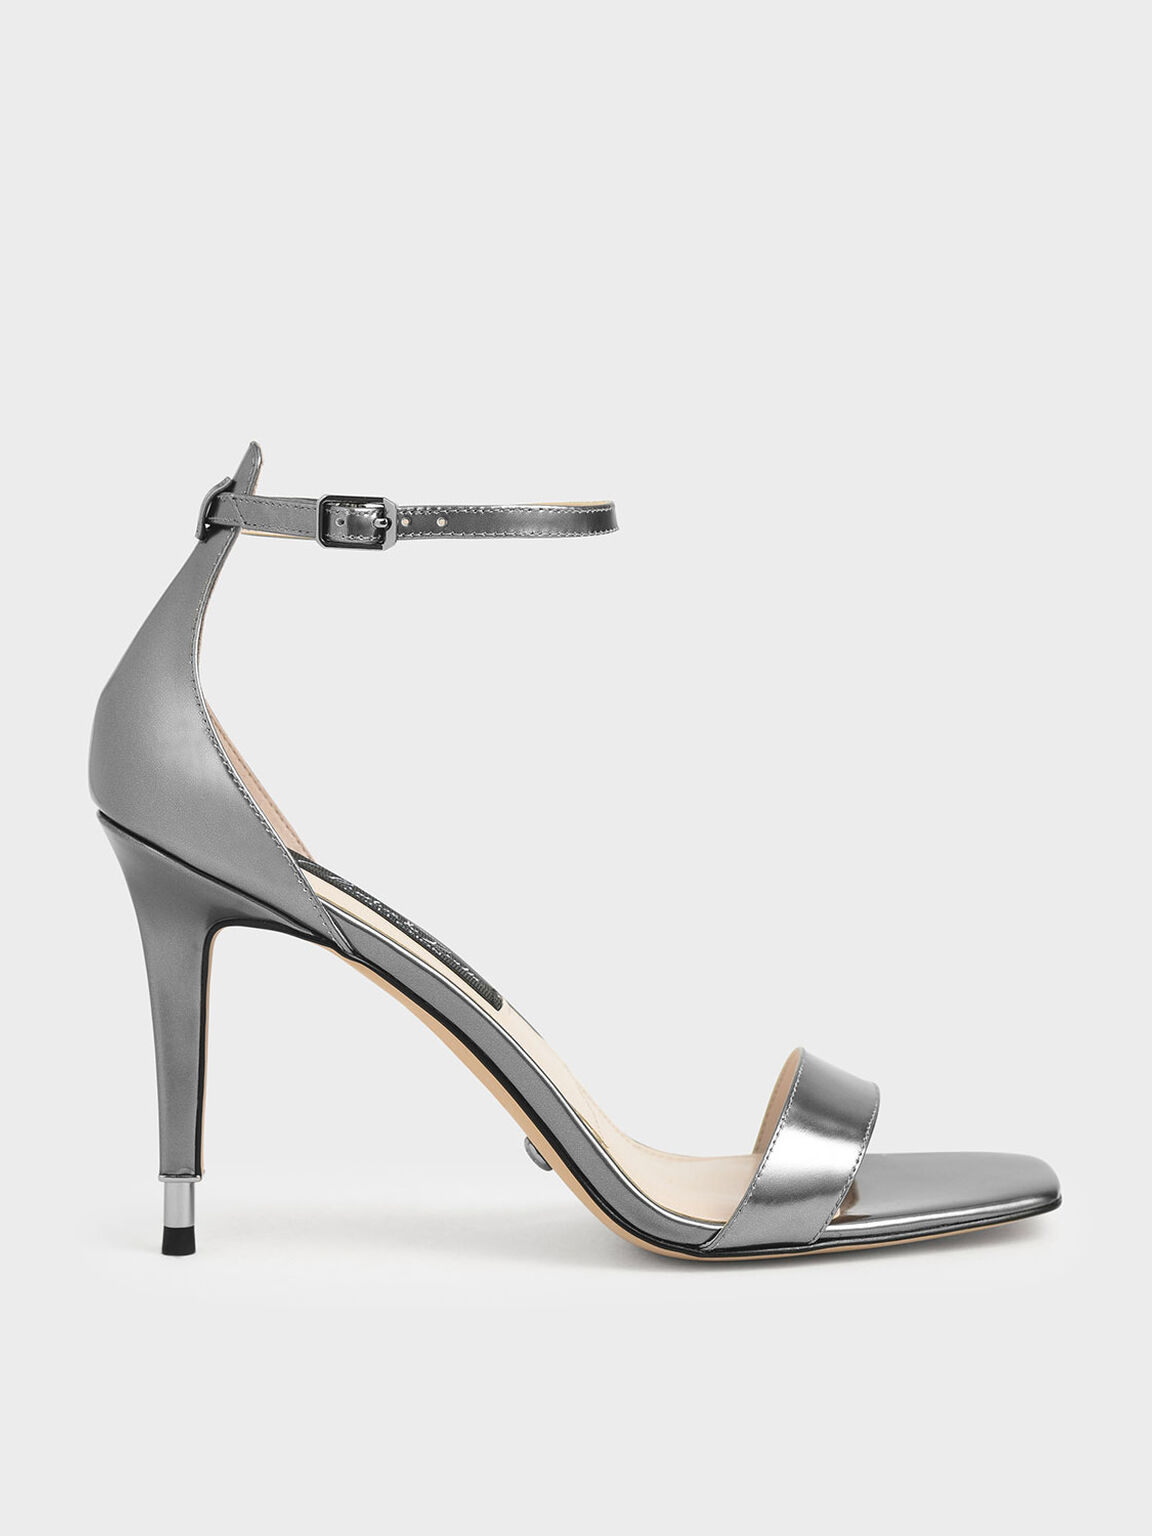 Metallic Leather Stiletto Heels, Silver, hi-res